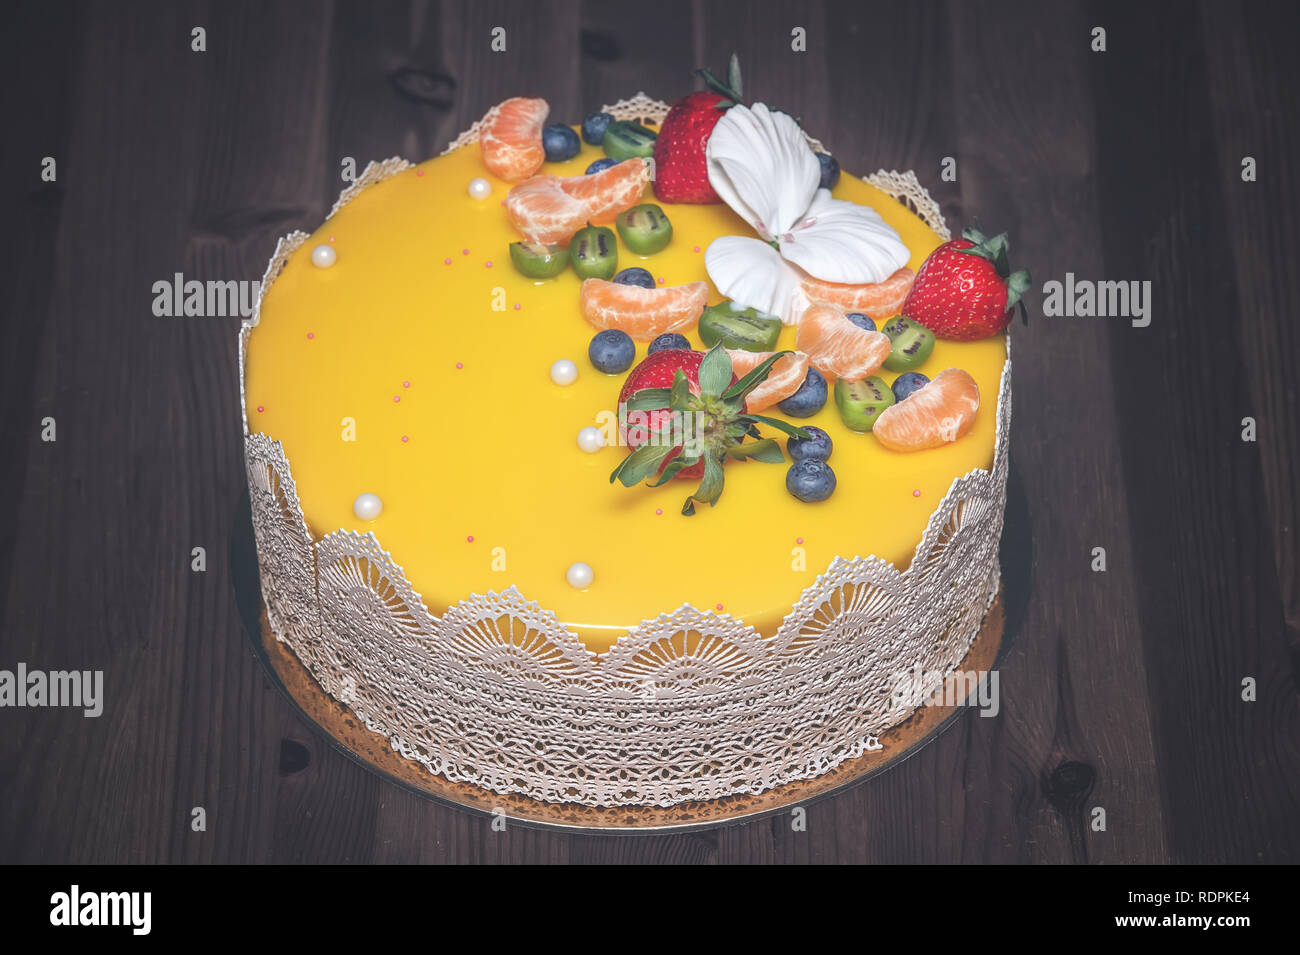 Beautiful delicious yellow cake with fruit and caramel decoration with a smooth jelly surface on a wooden background. - Stock Image